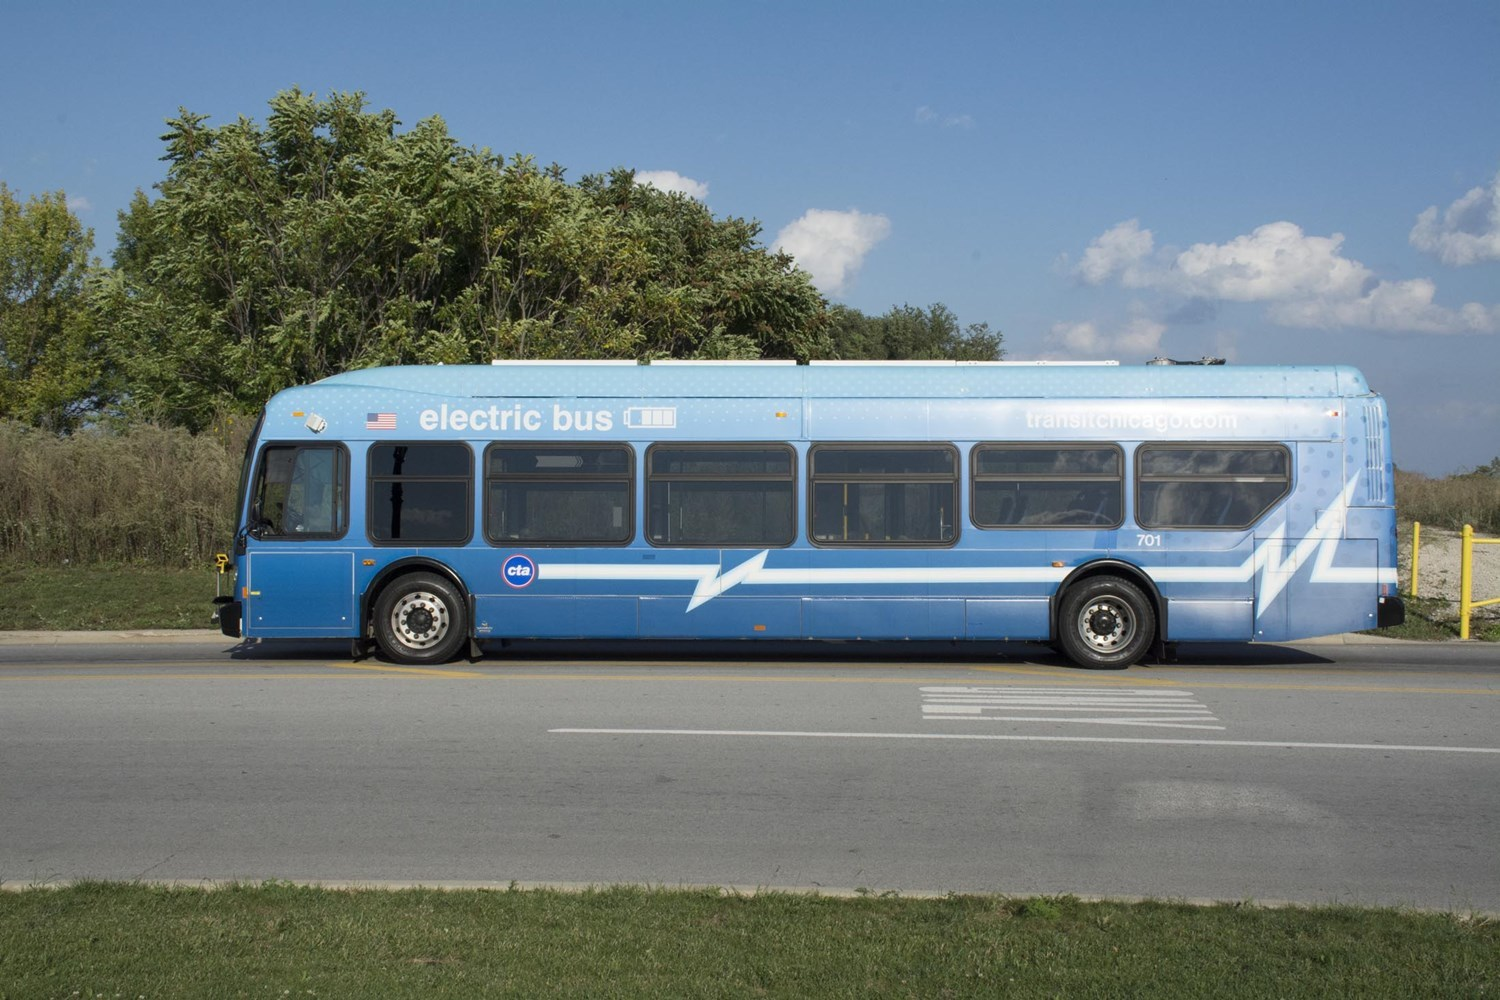 New Flyer 700-series all-electric bus